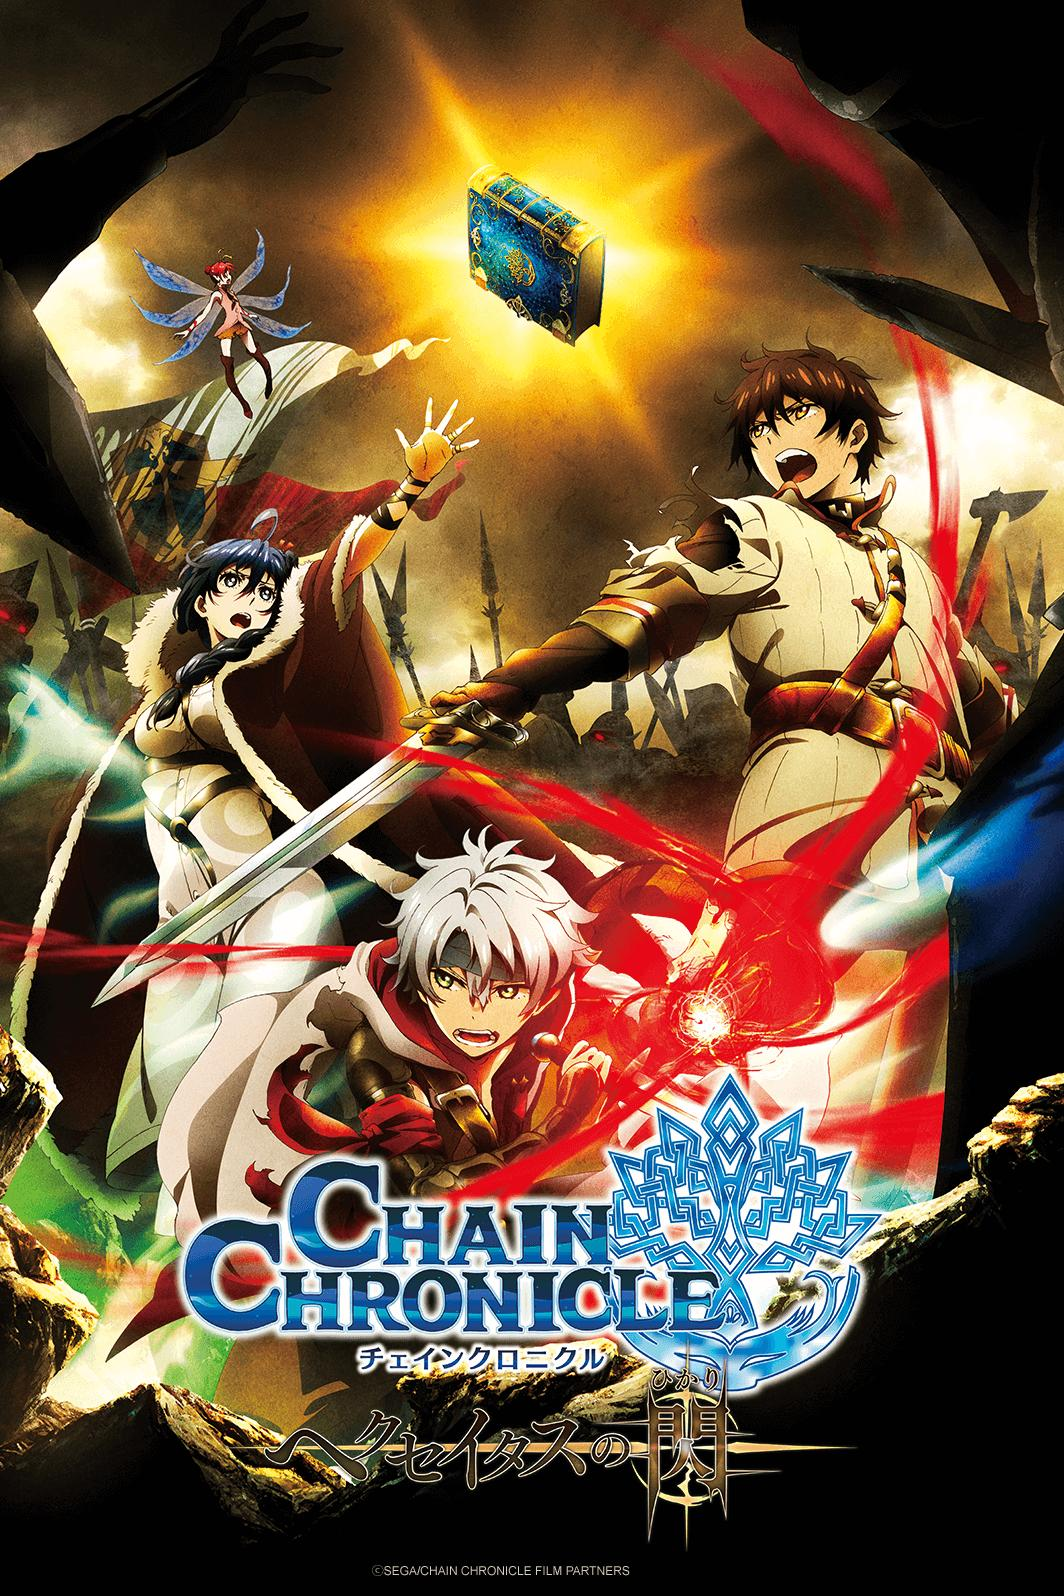 Chain Chronicle - The Light of Haecceitas - - Watch on